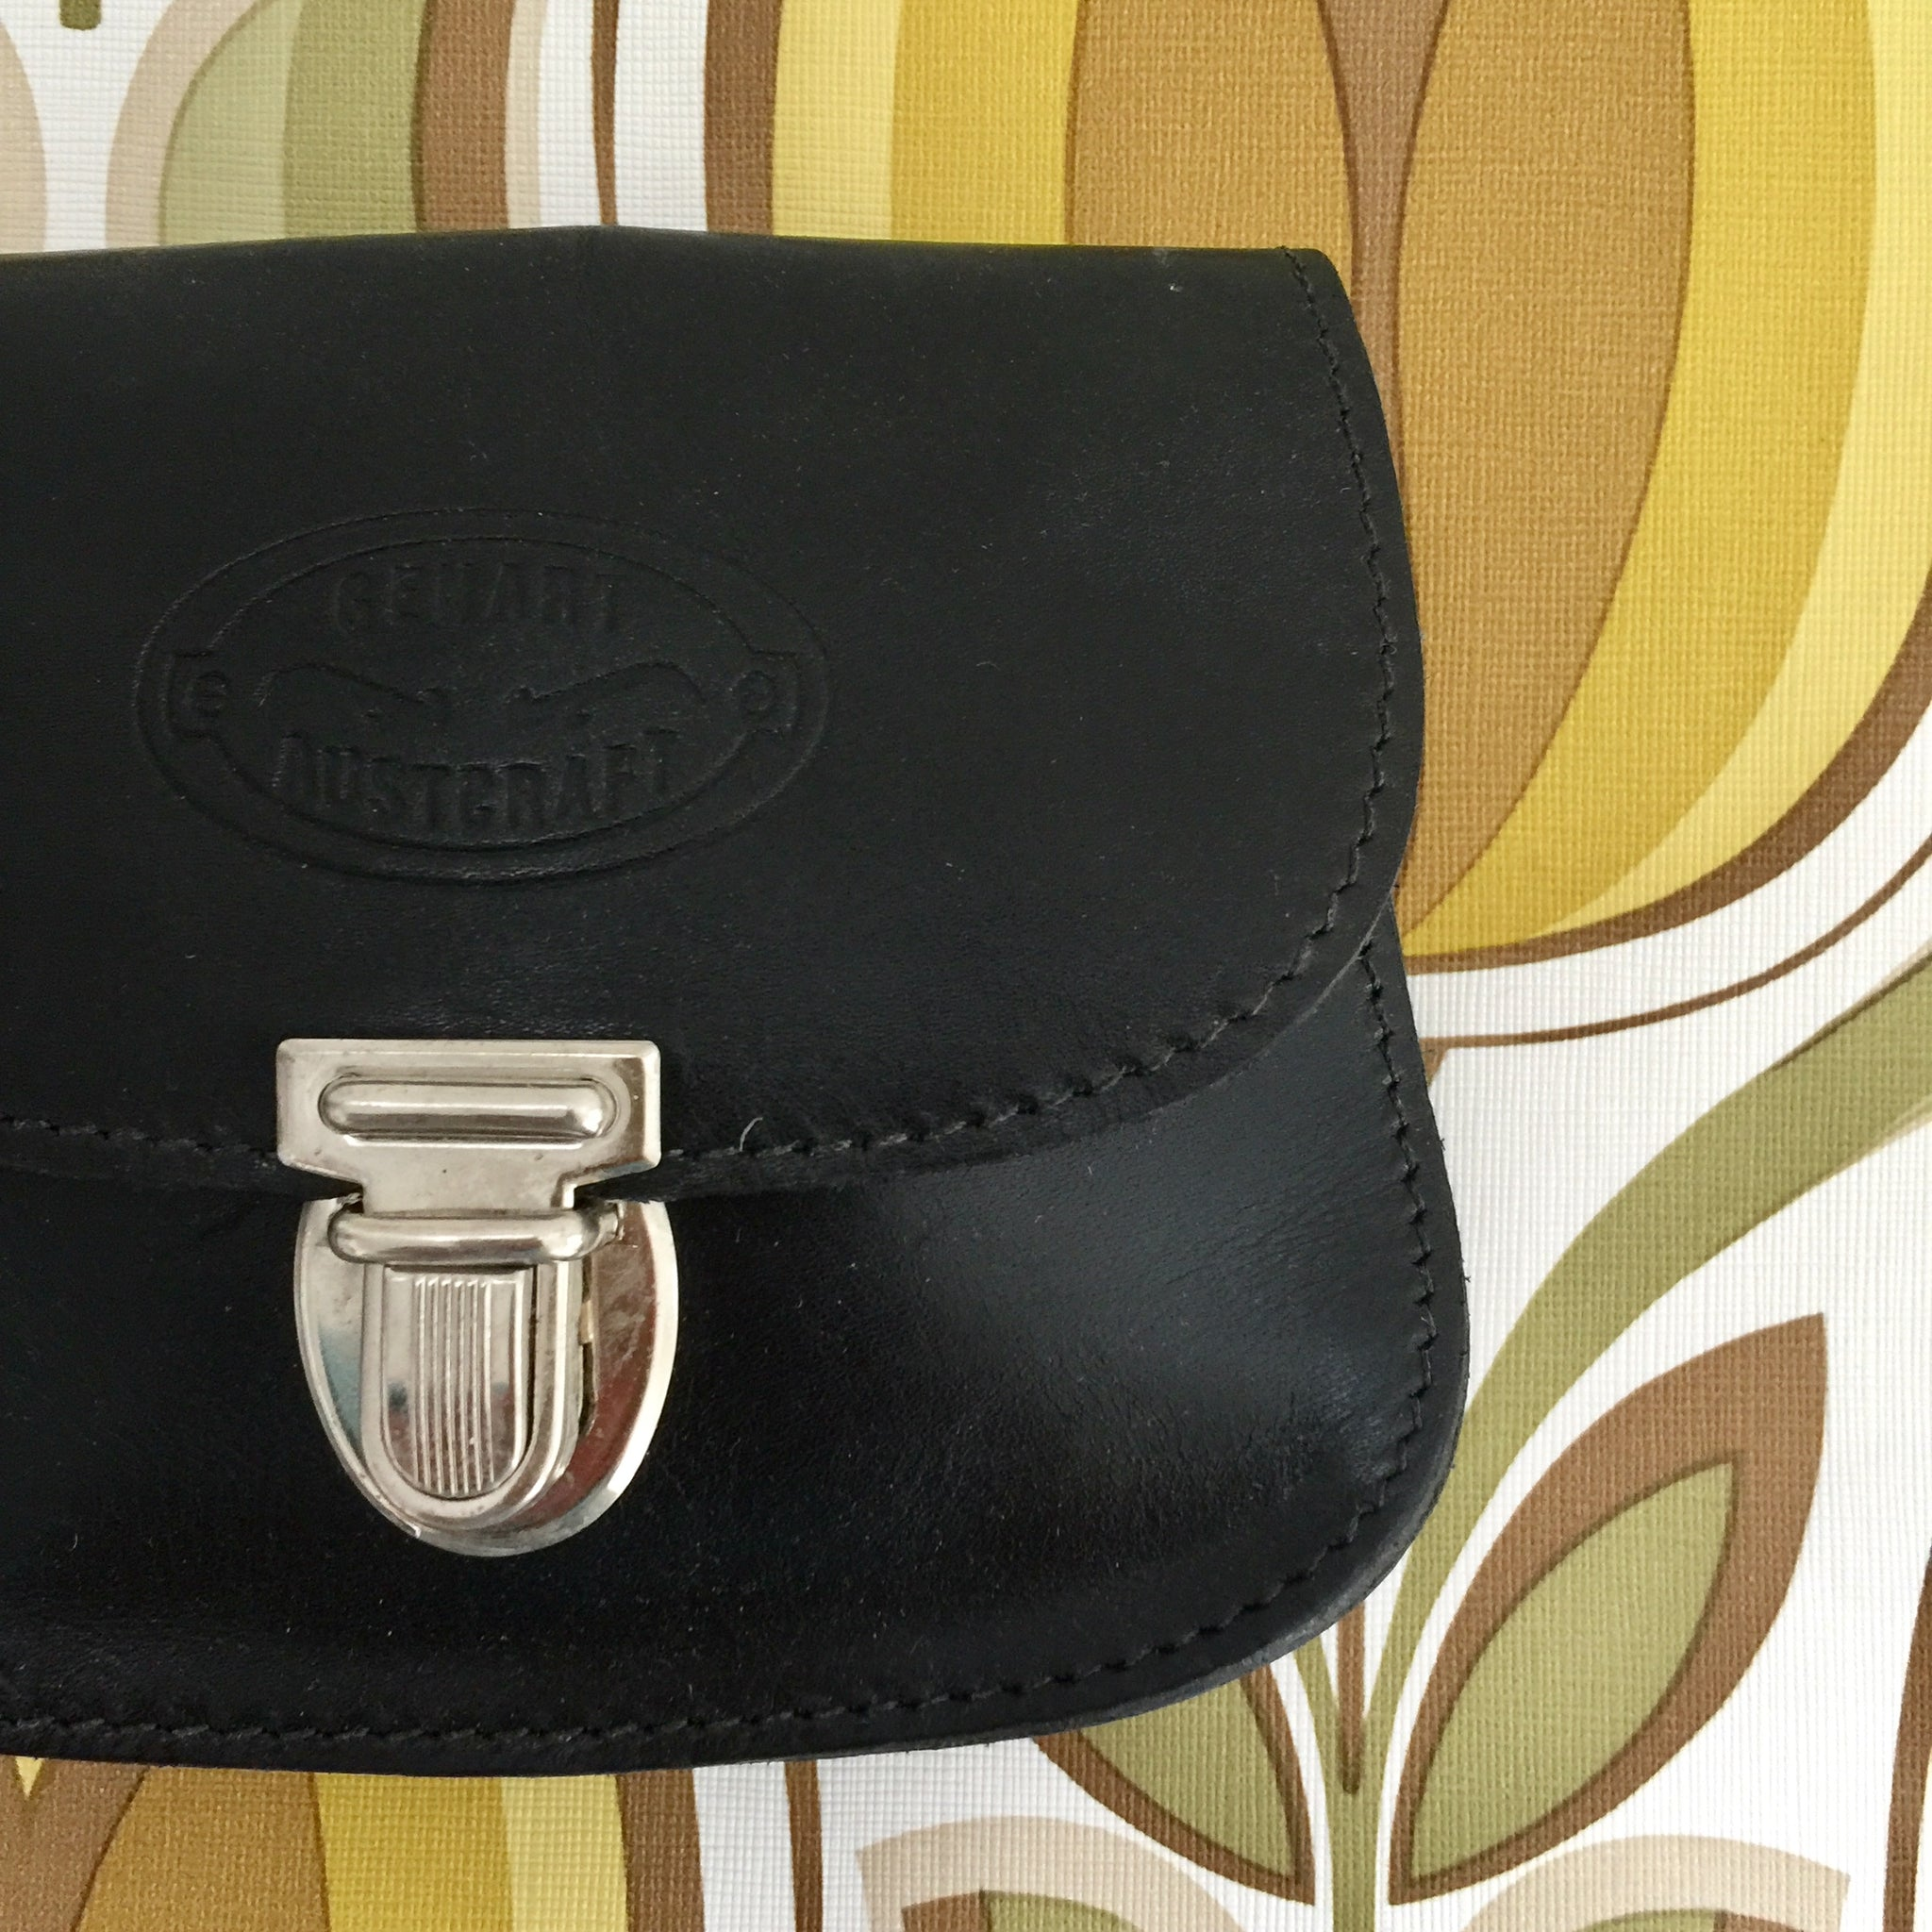 GENART AUSTCRAFT Genuine Leather Purse Handbag Mini Black Coin